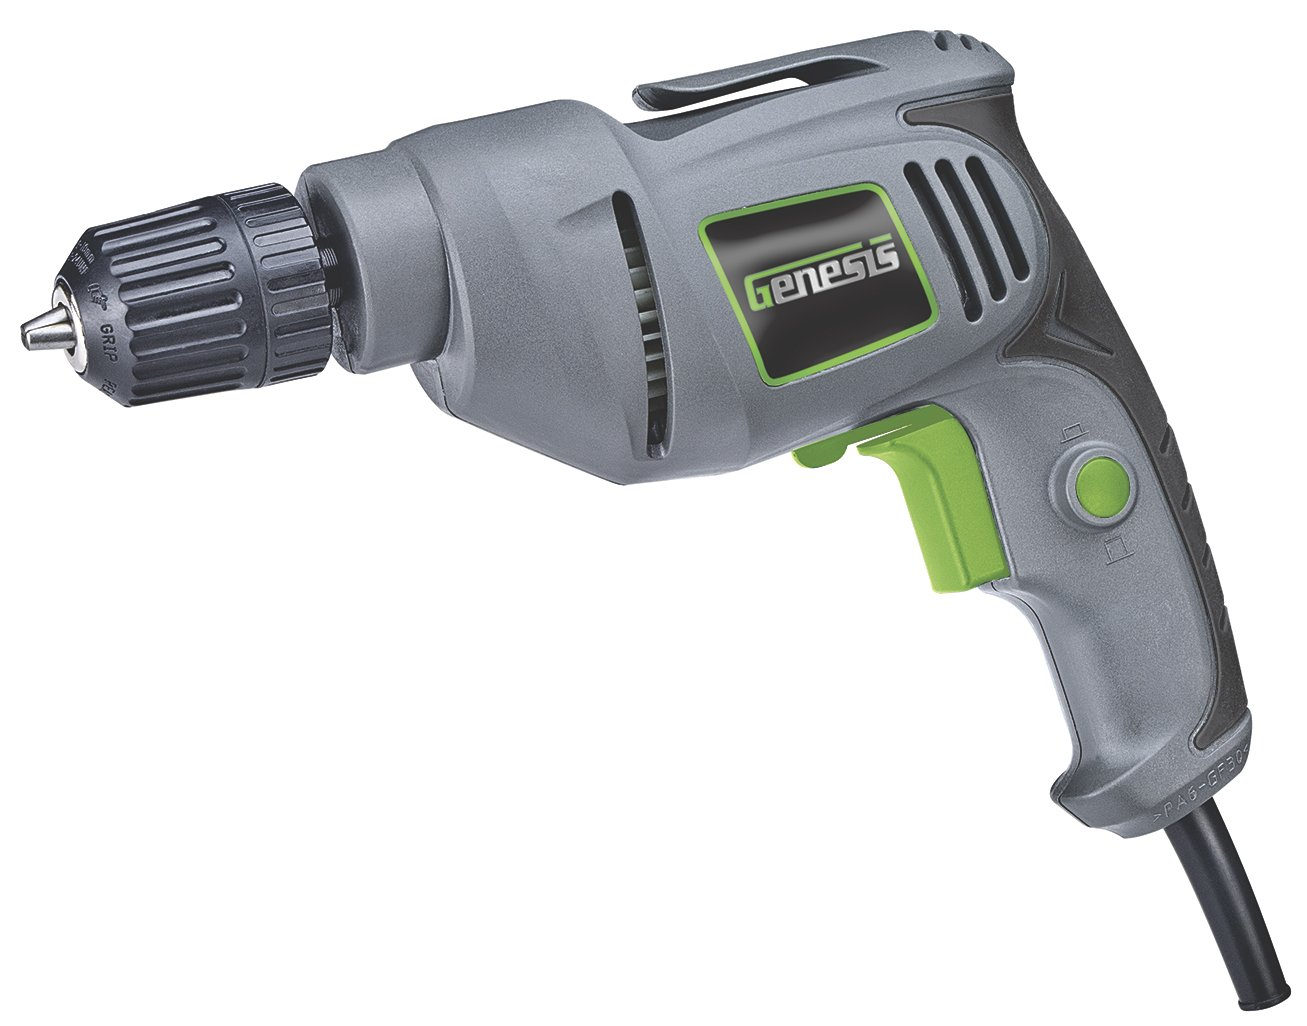 Genesis GD38B Variable Speed Reversible Electric Drill with 3 8-Inch Keyless Chuck, Belt Clip, Rubberized Grip, and Lock-On Button